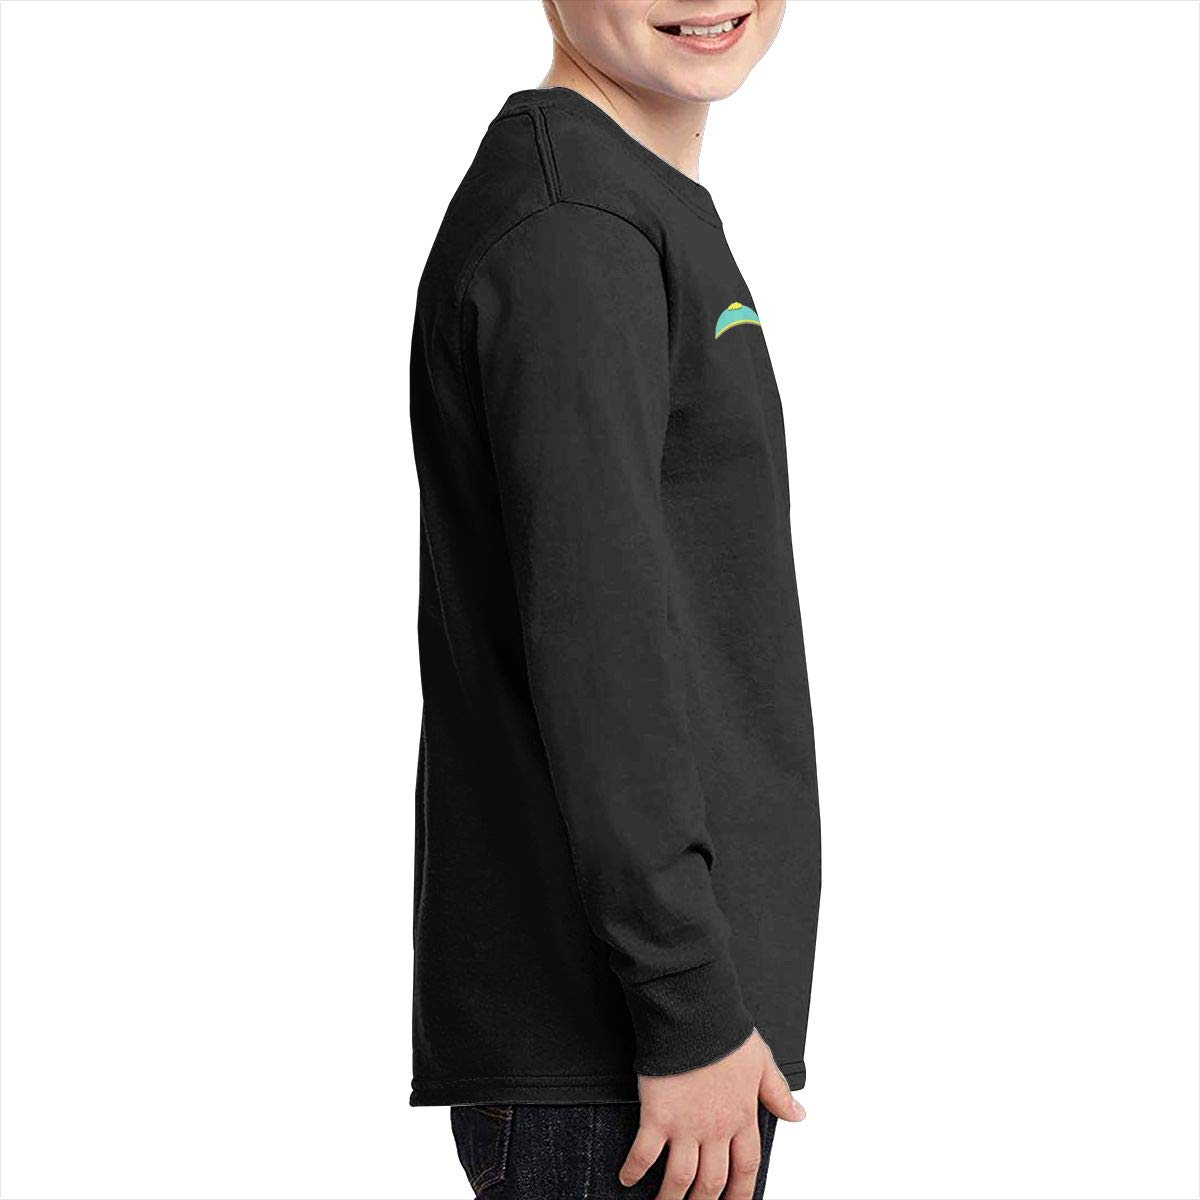 TWOSKILL Youth South-Park Long Sleeves Shirt Boys Girls